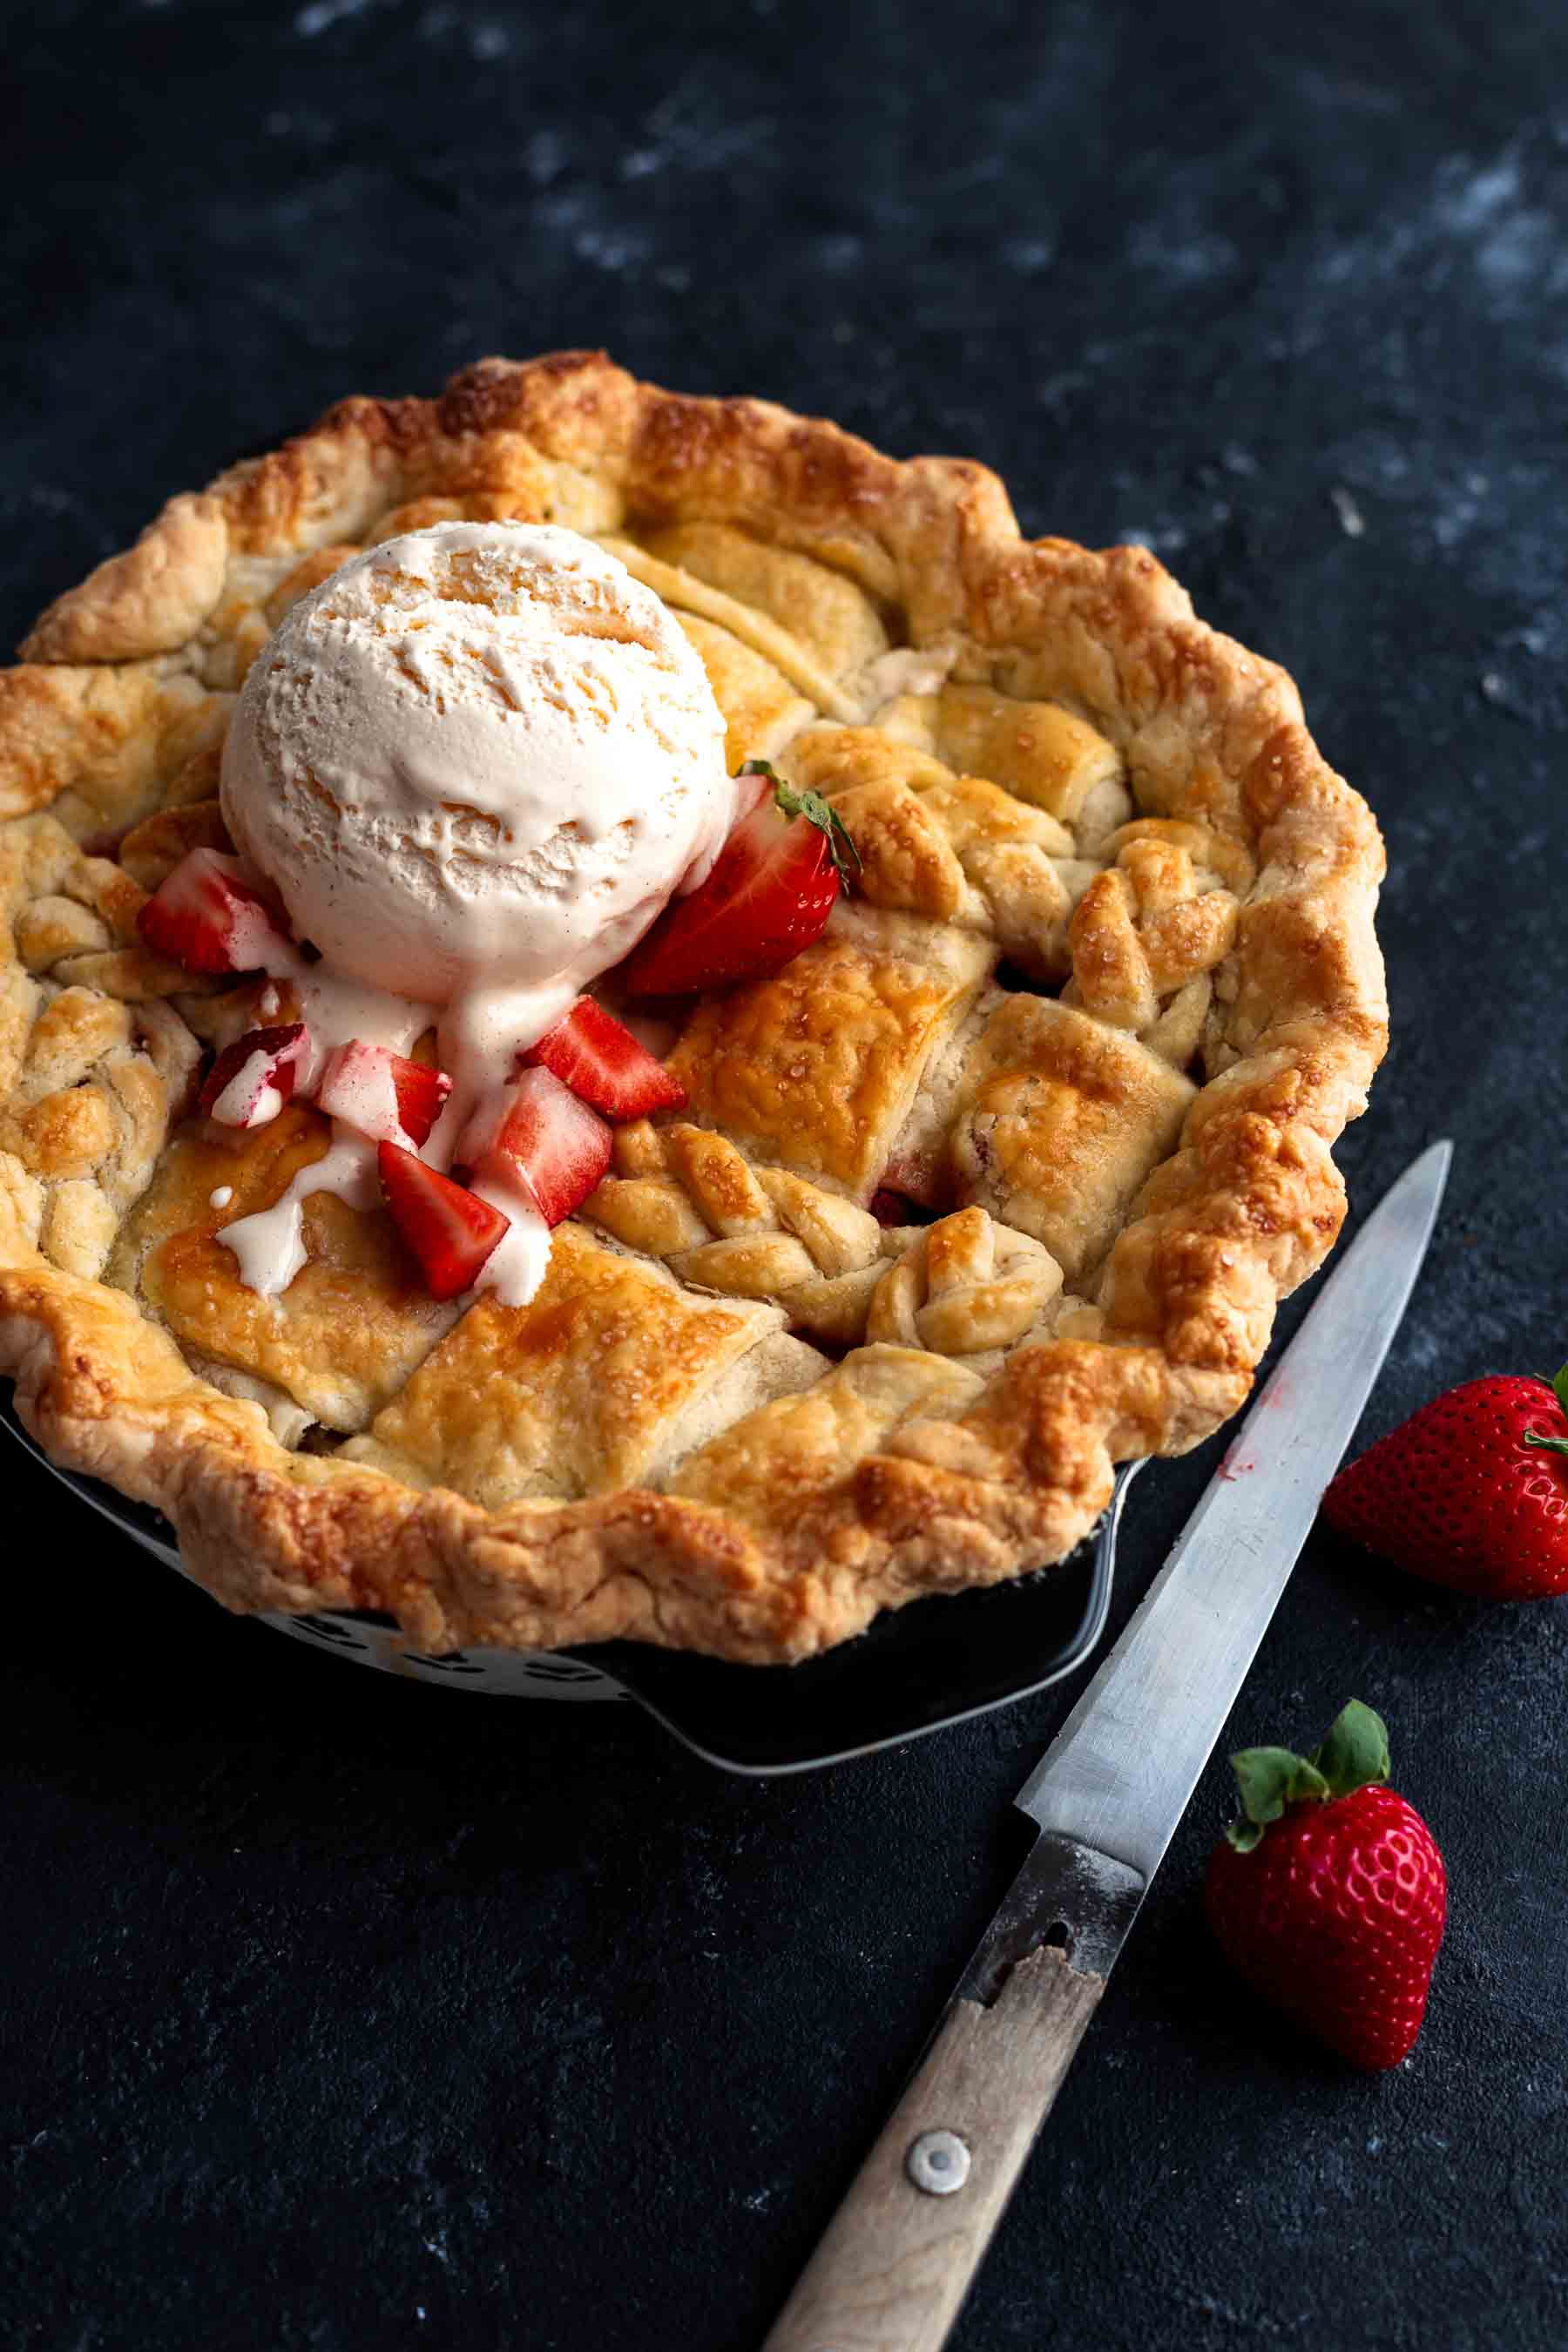 strawberry rhubarb pie with strawberries by it